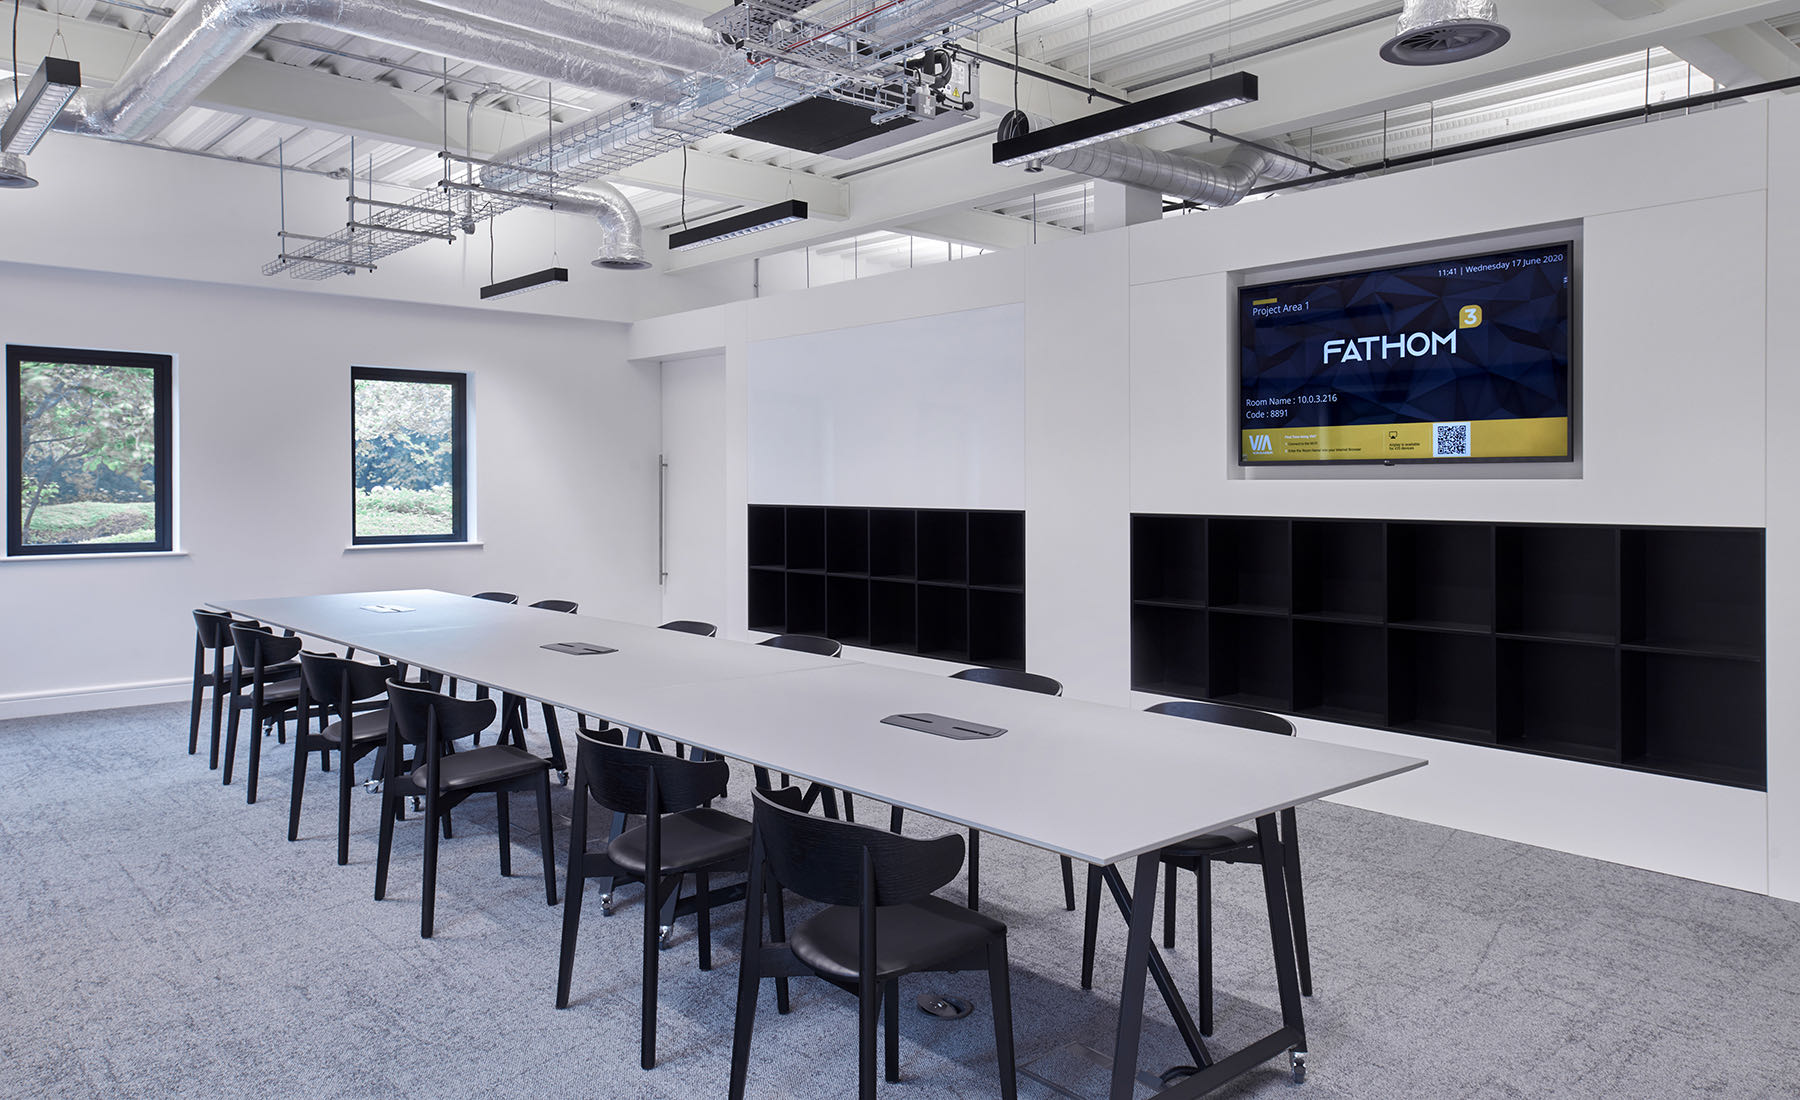 fathom3-west-yorkshire-office-4